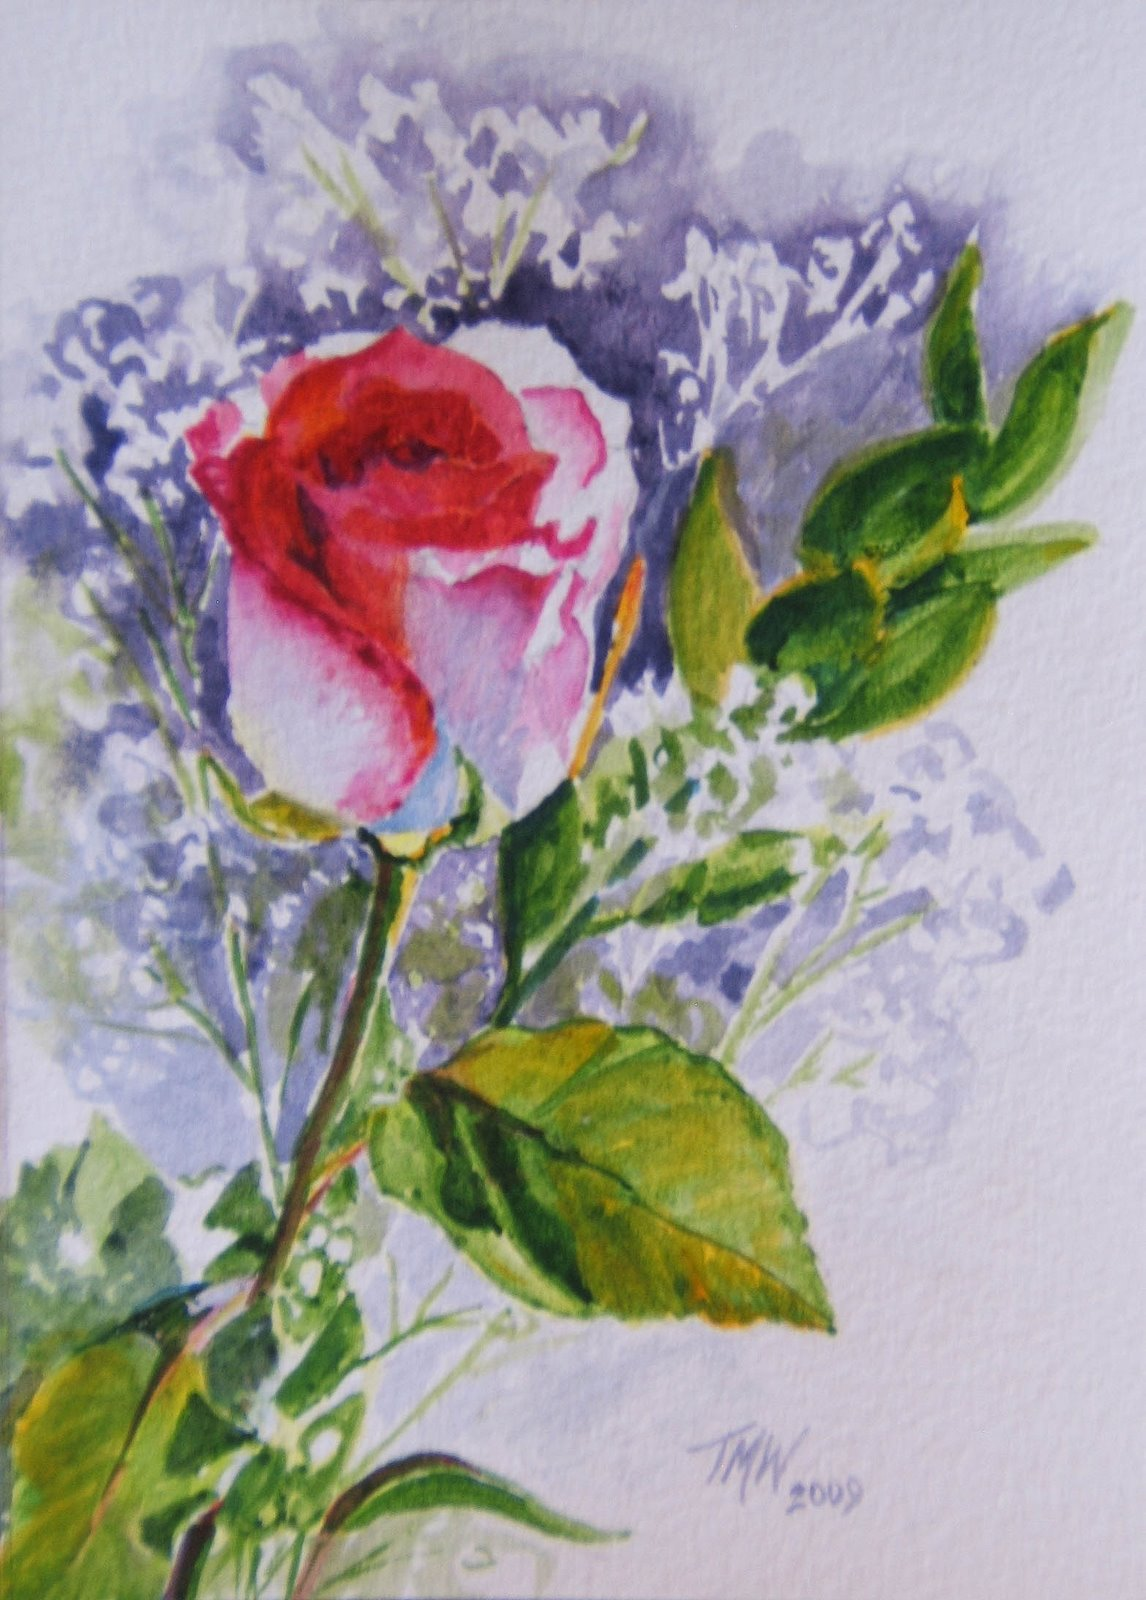 """7""""x 5"""" watercolor on paper, copyright 2009 Tina M. Welter"""